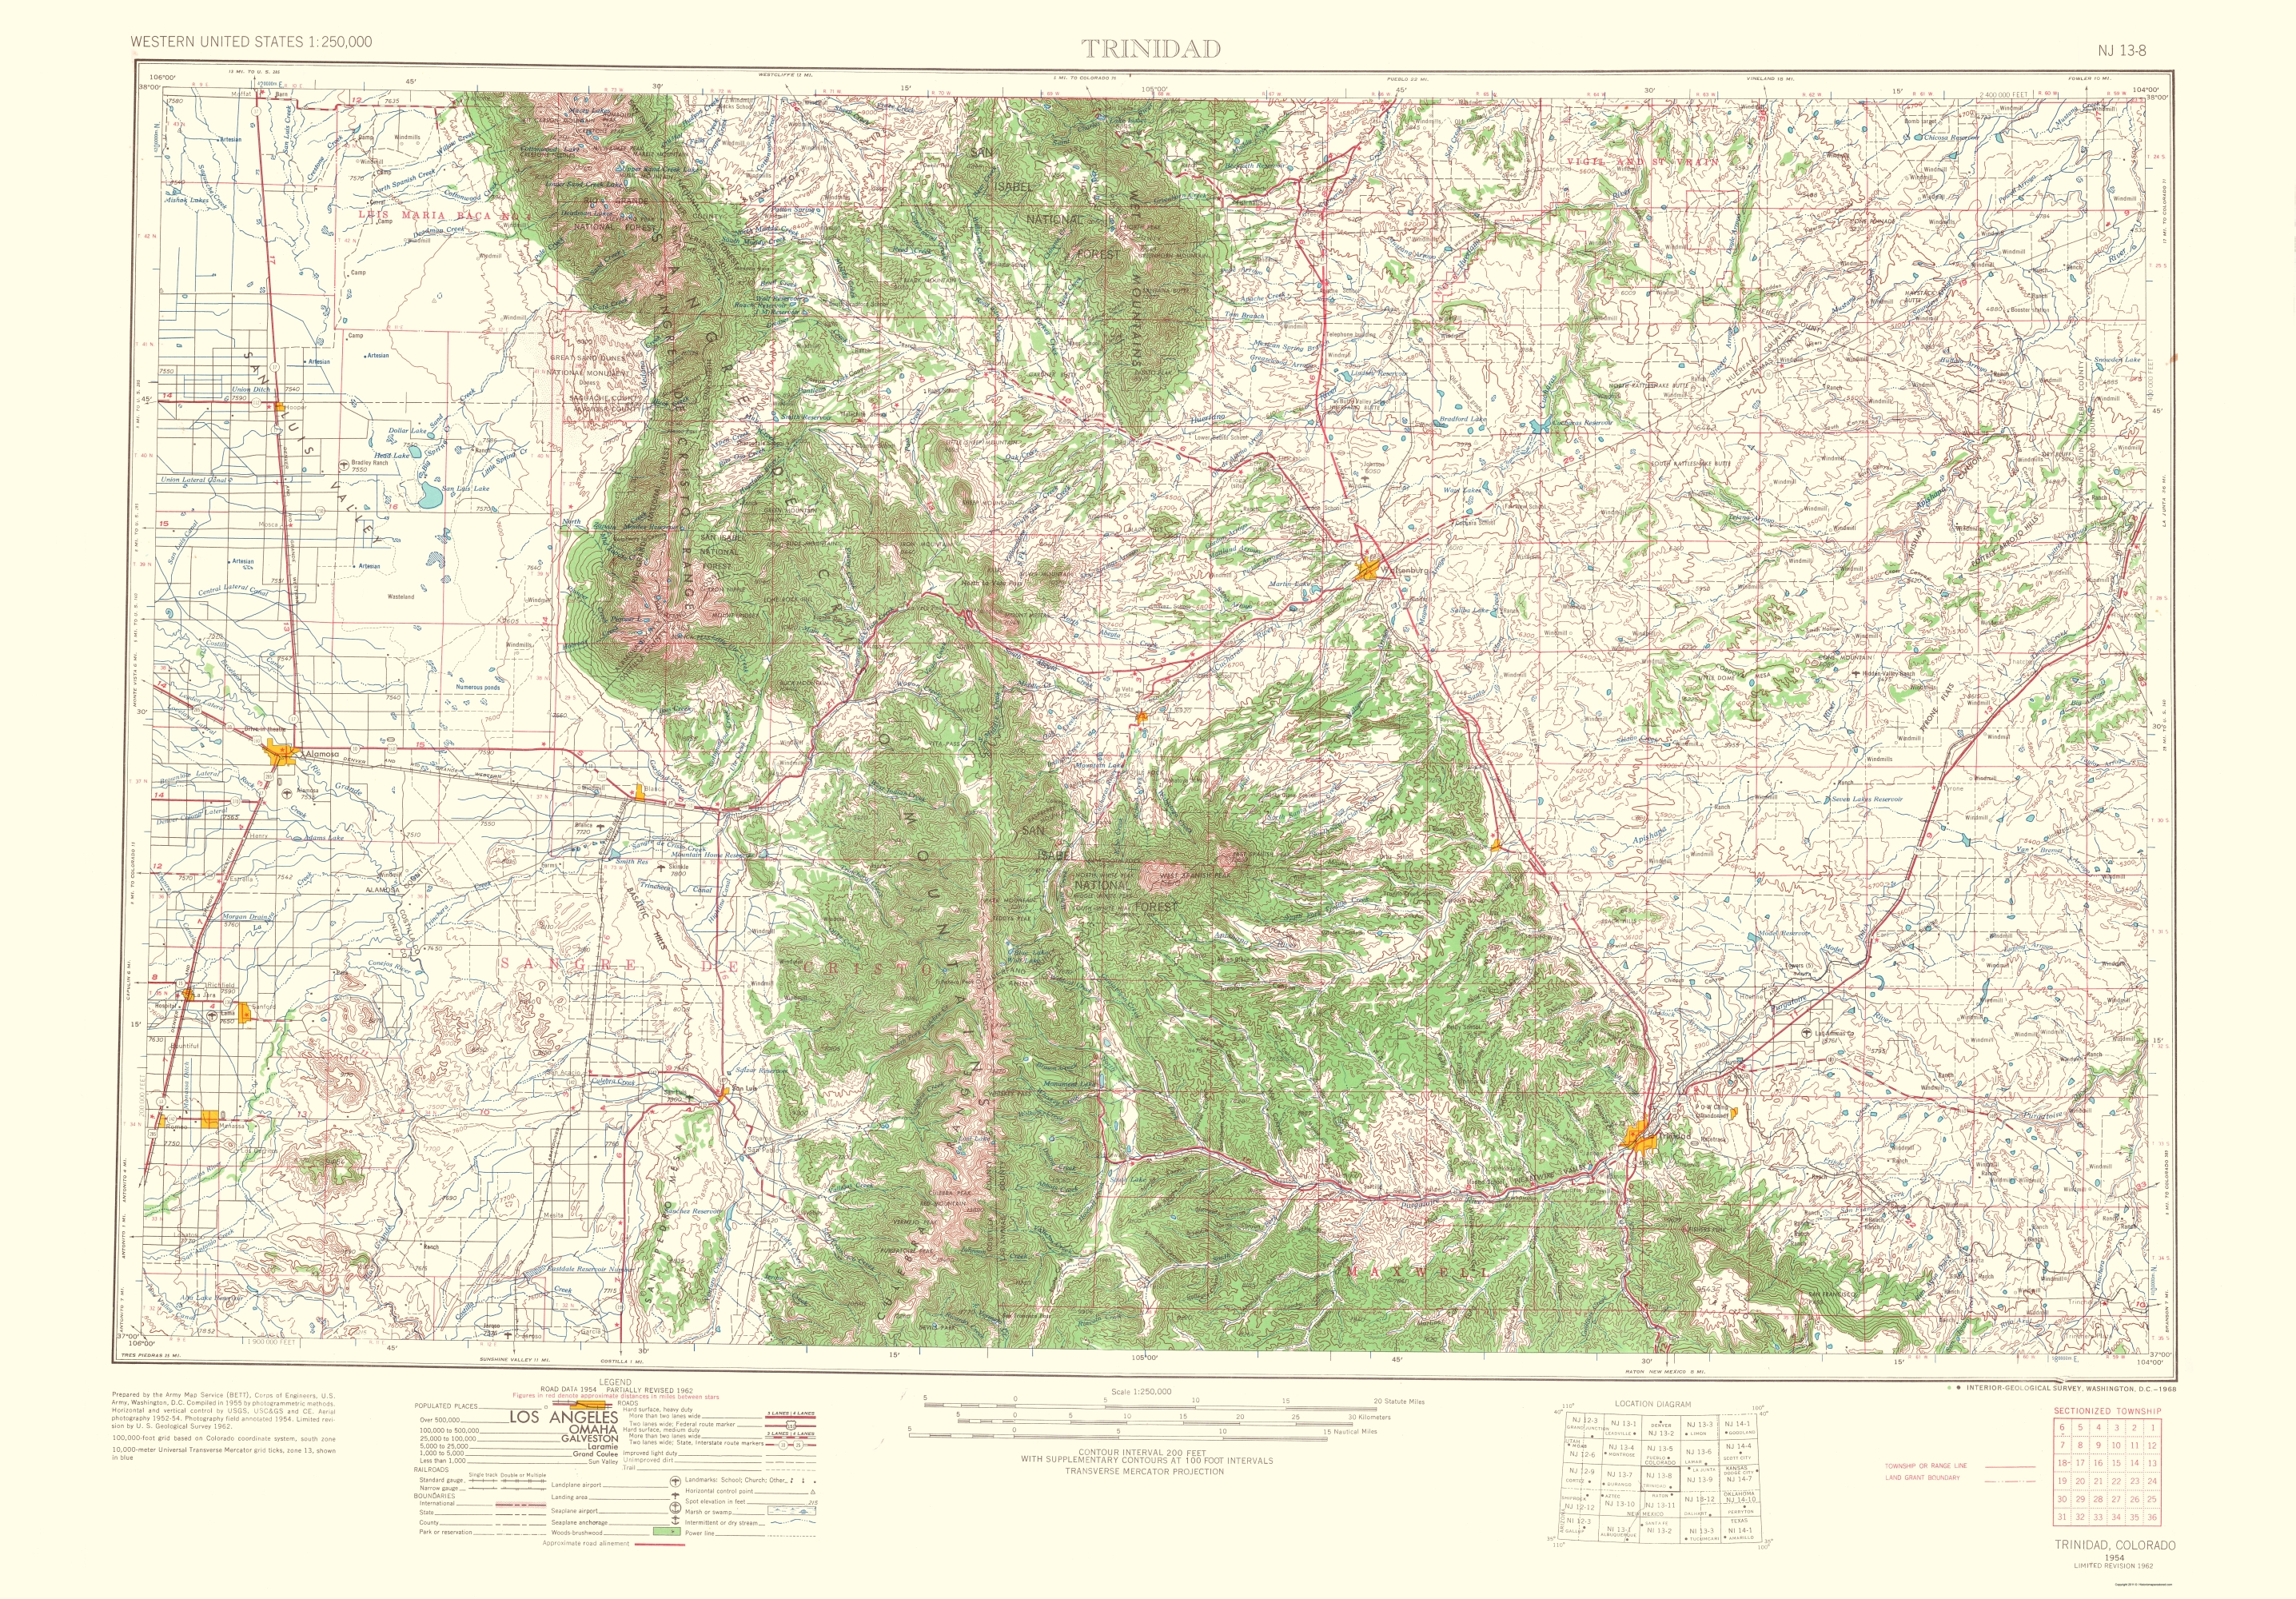 Old Topographical Map Trinidad Colorado 1954